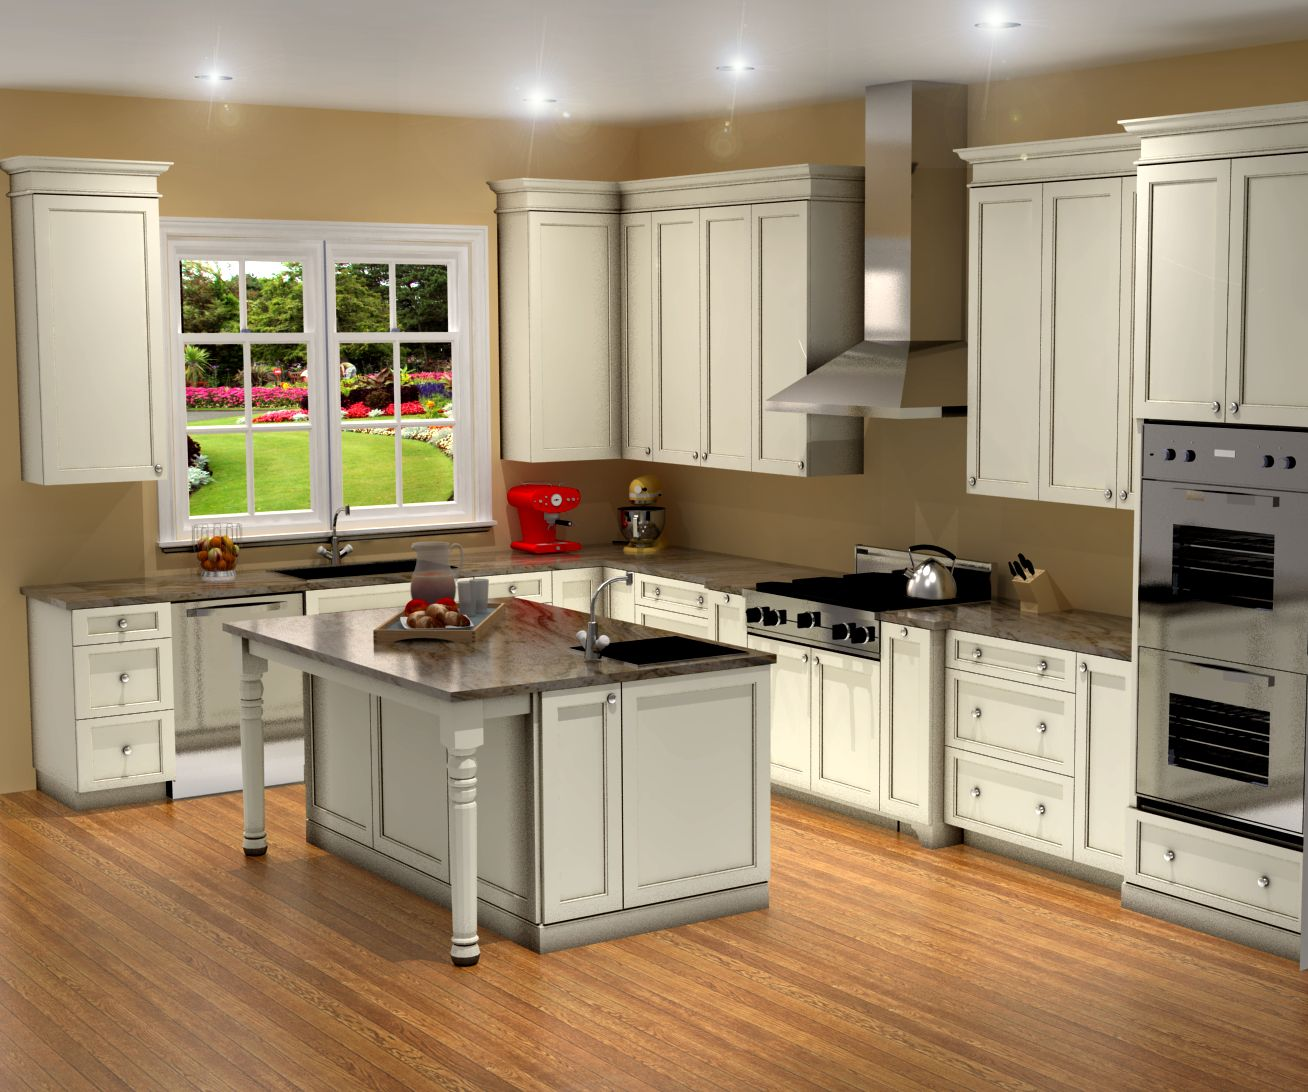 Kitchen Plans By Design: Traditional White Kitchen Design / 3D Rendering